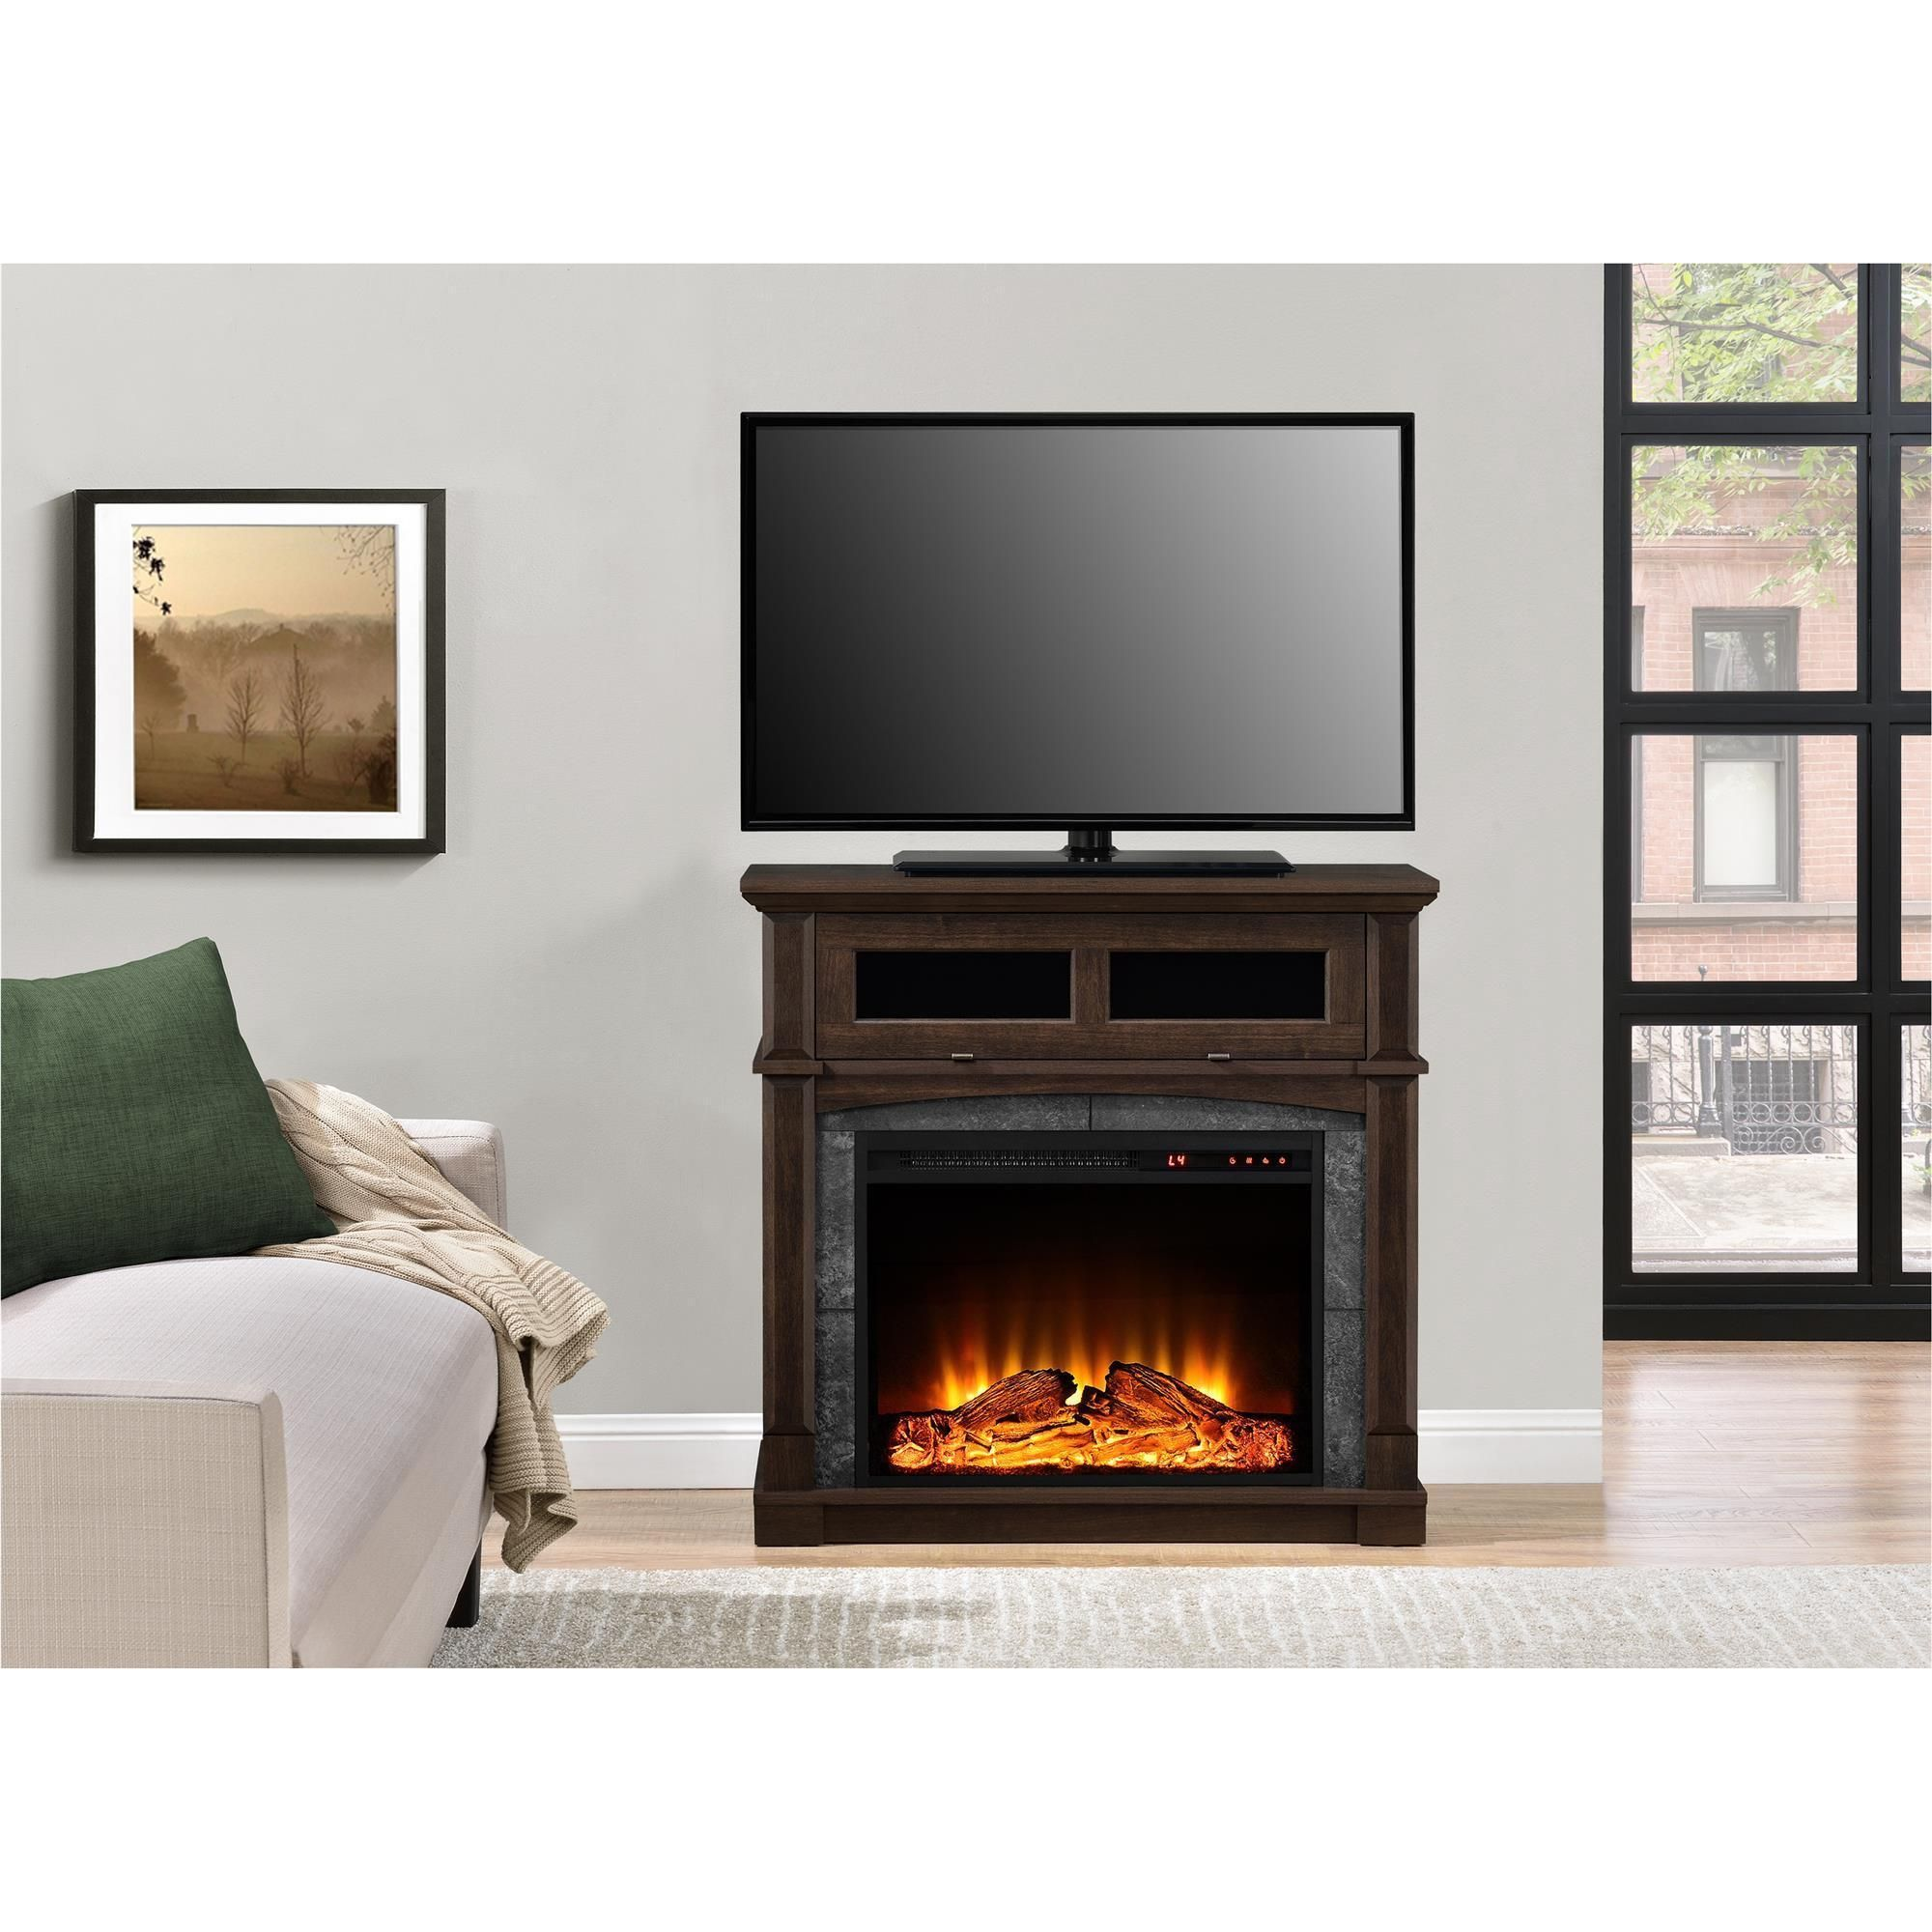 Altra thompson place electric fireplace inch tv stand electric